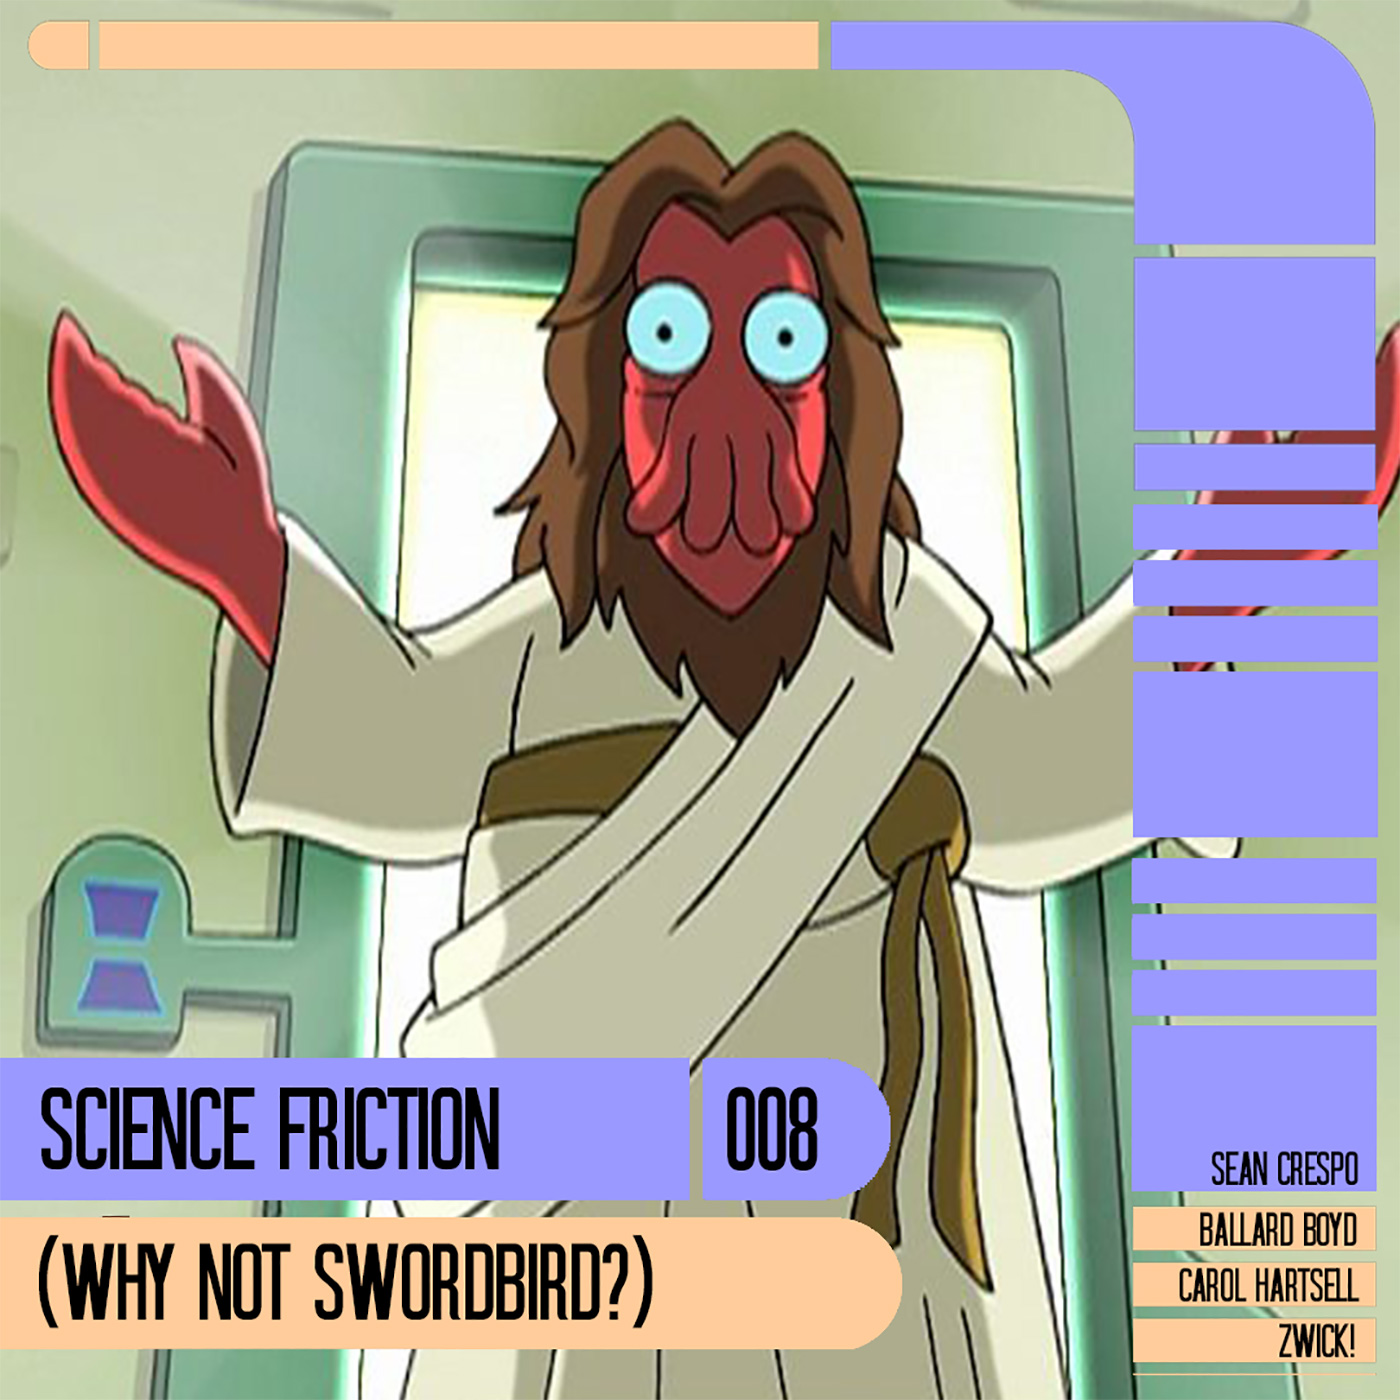 Science Friction 008: Why Not Sword Bird?